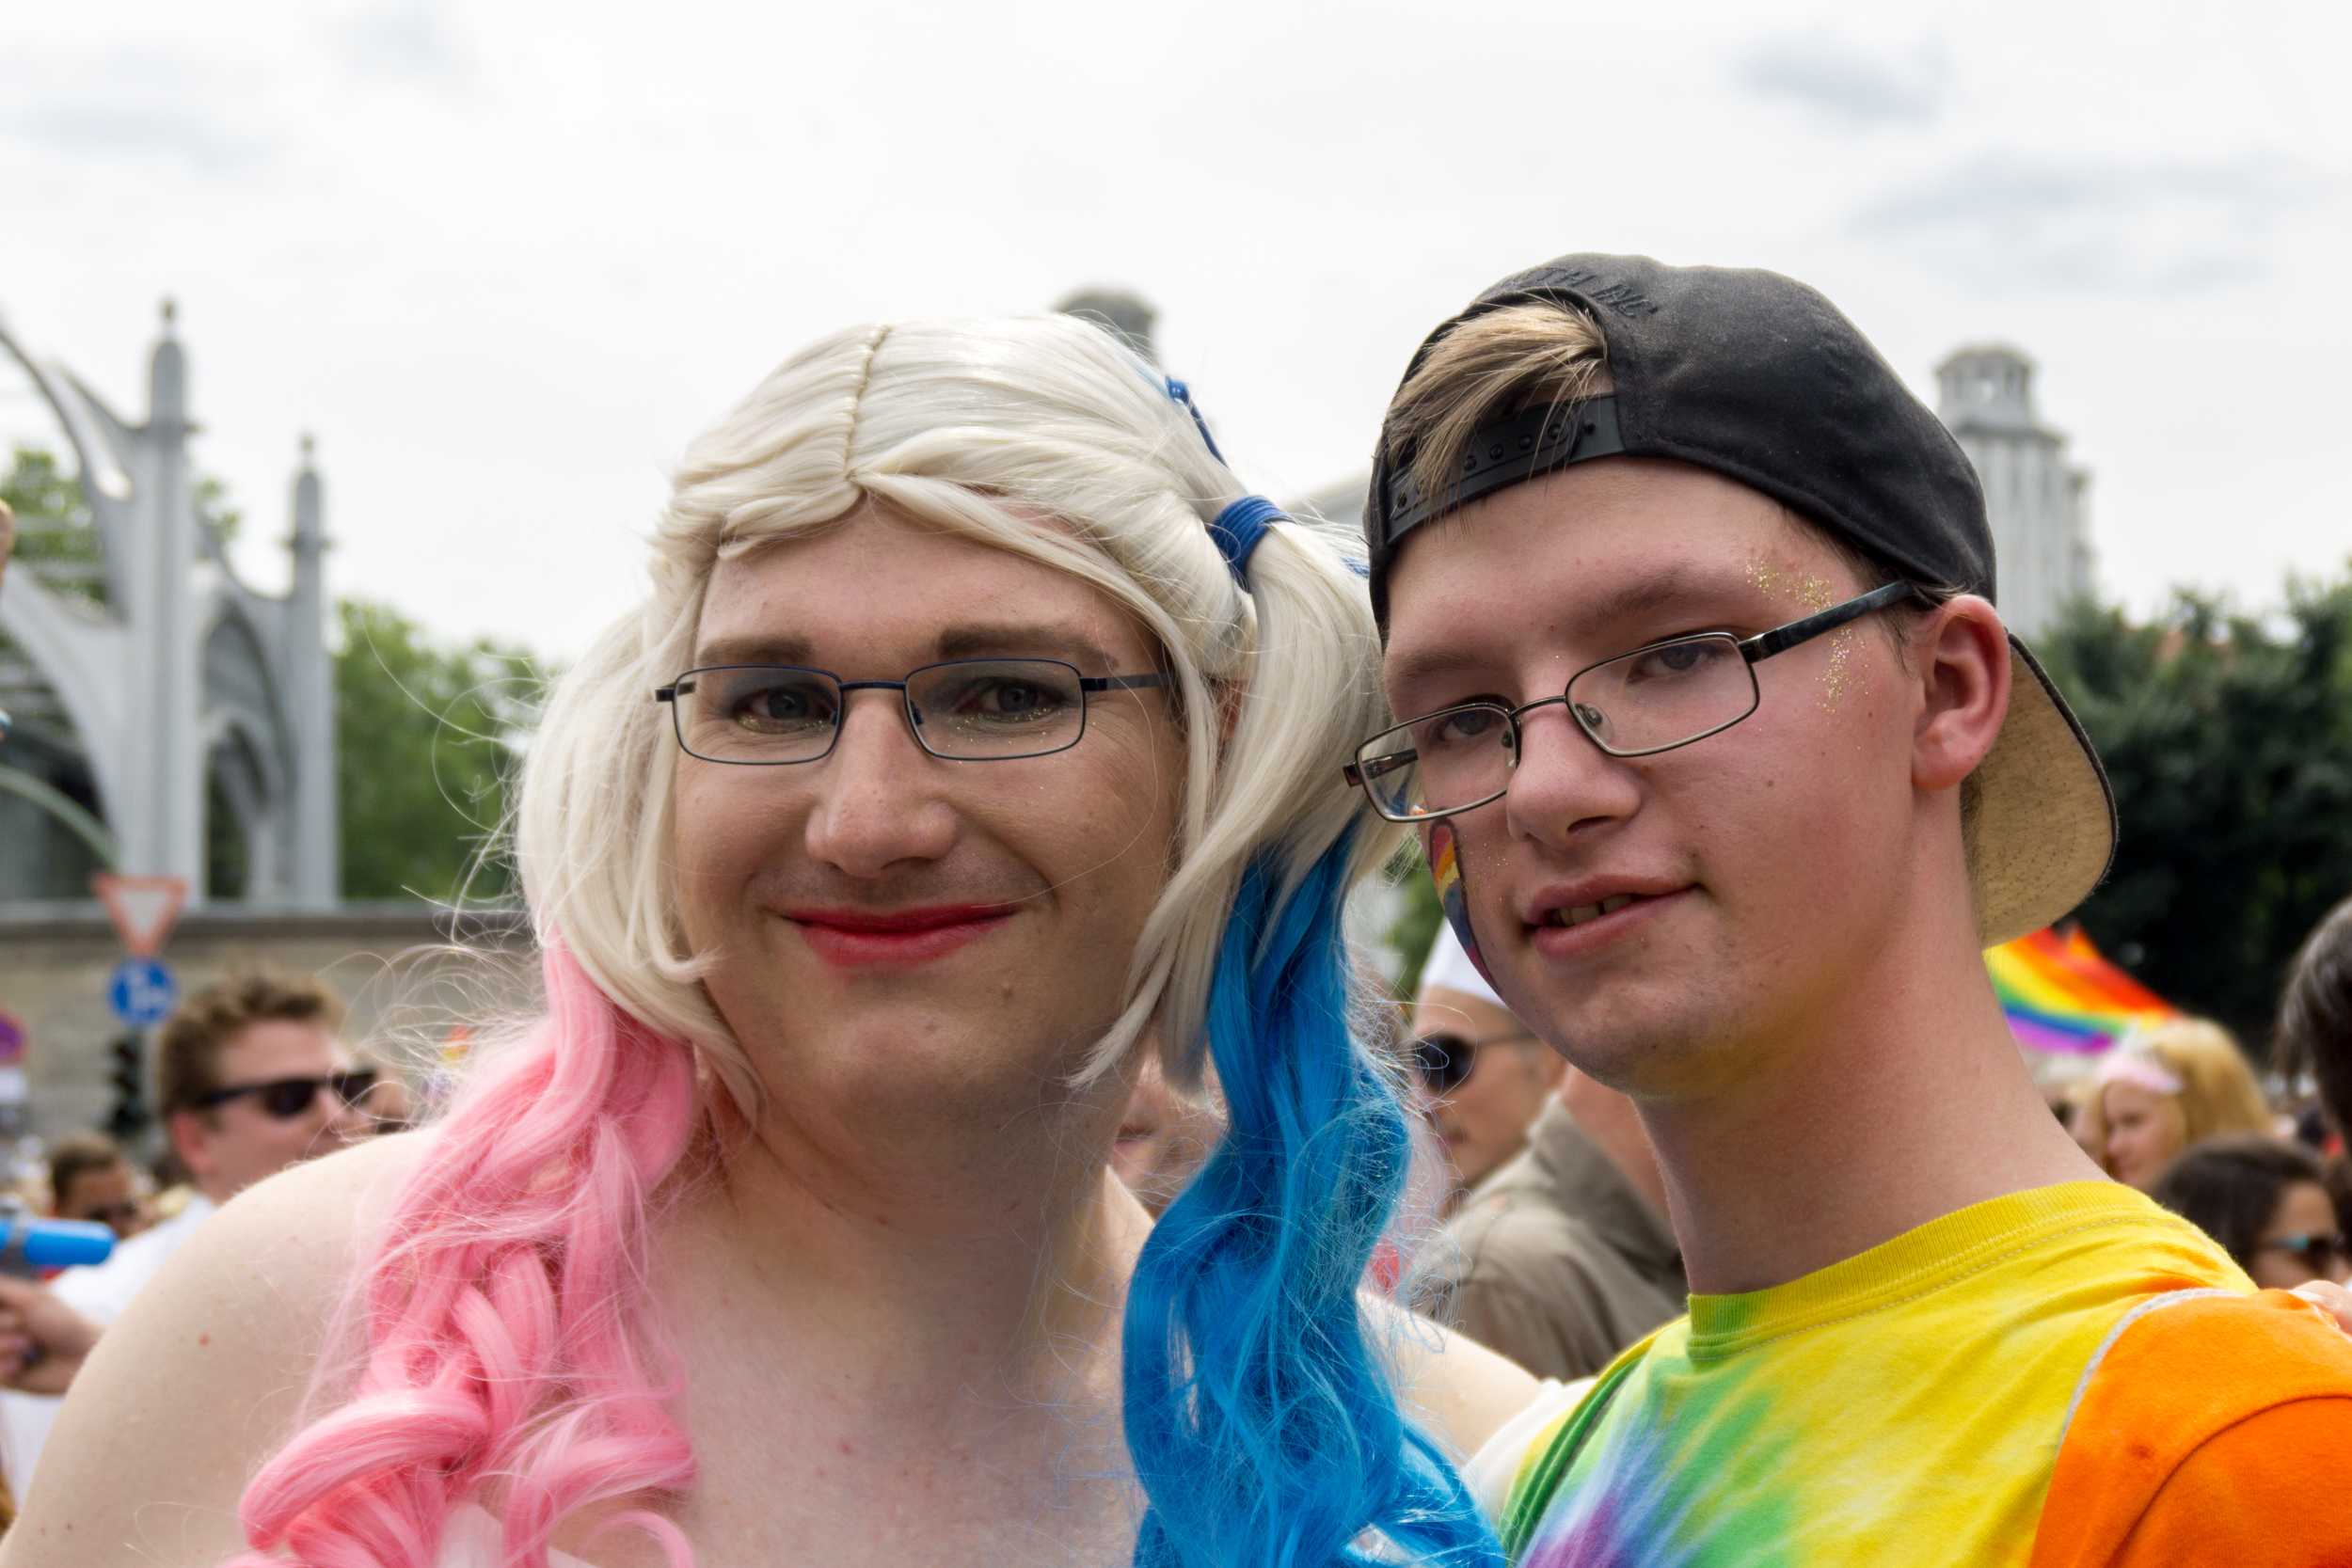 In_Pictures-Berlin_Pride-14